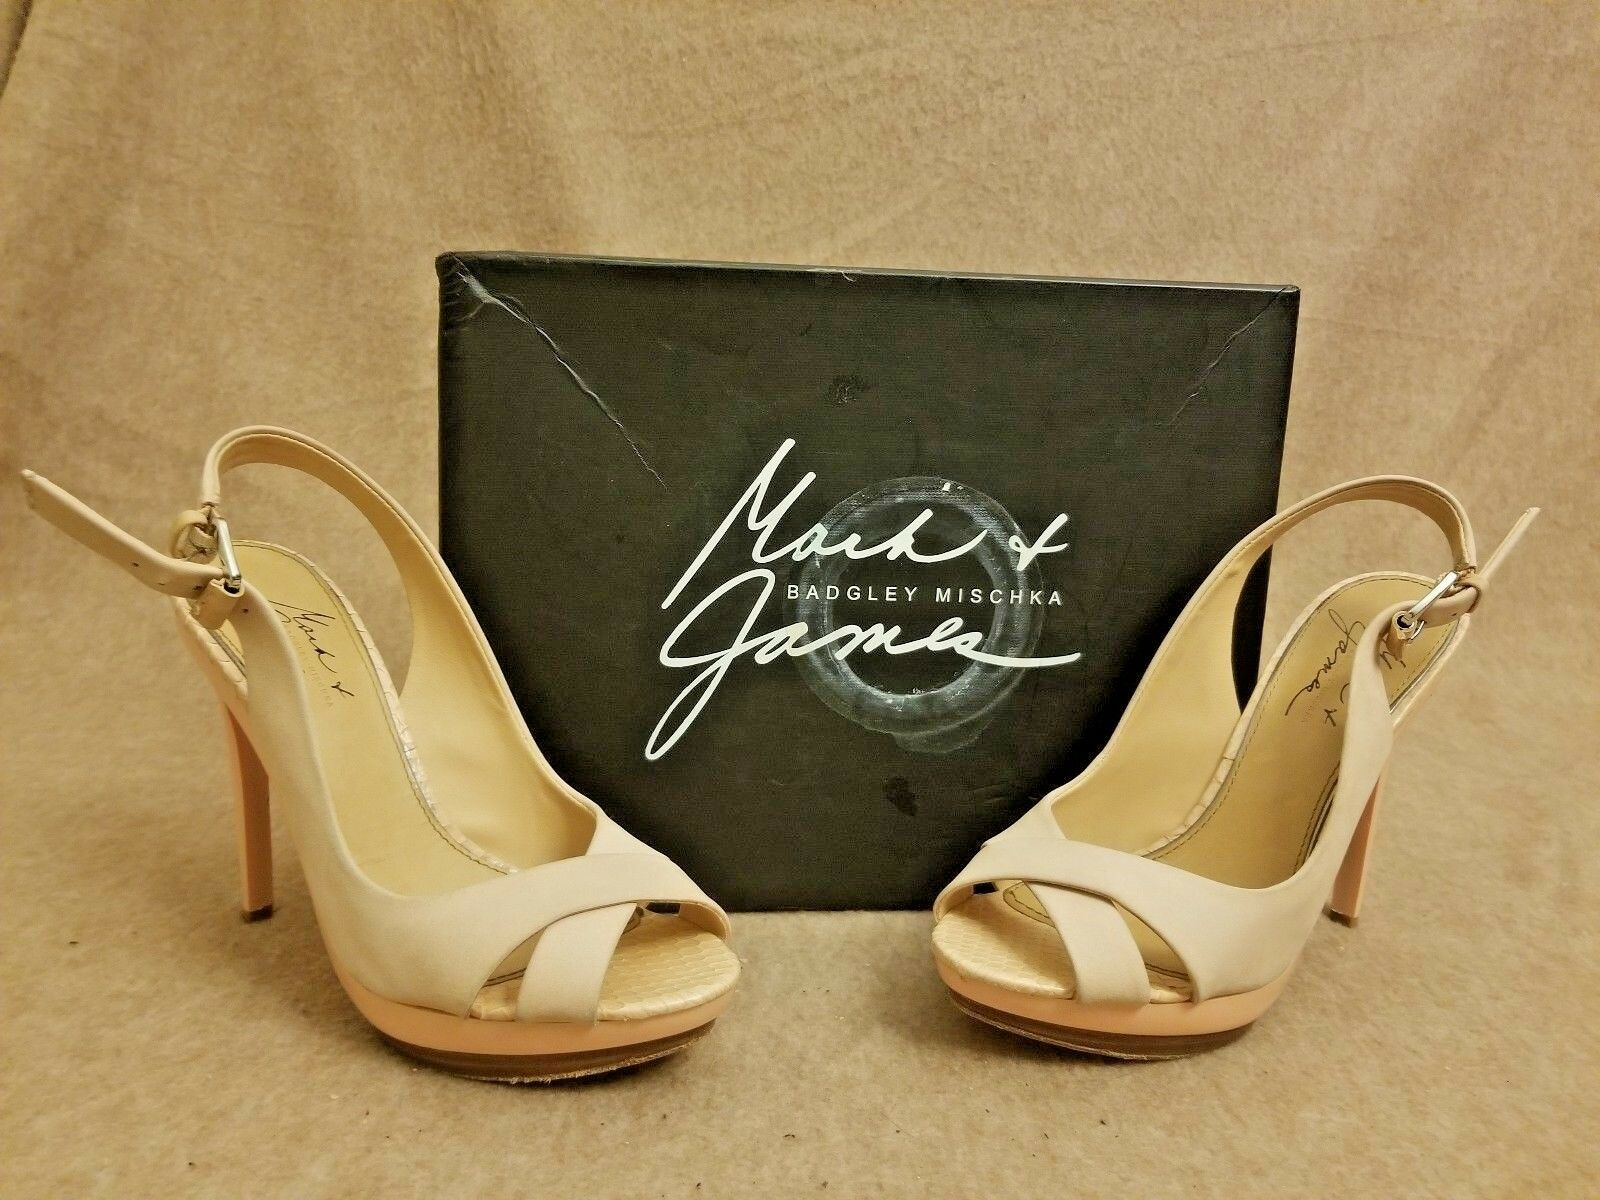 preferenziale Mark Mark Mark & James by Badgley Mischka donna Maybel rosa Slingback Sandals Dimensione 6 M  outlet online economico